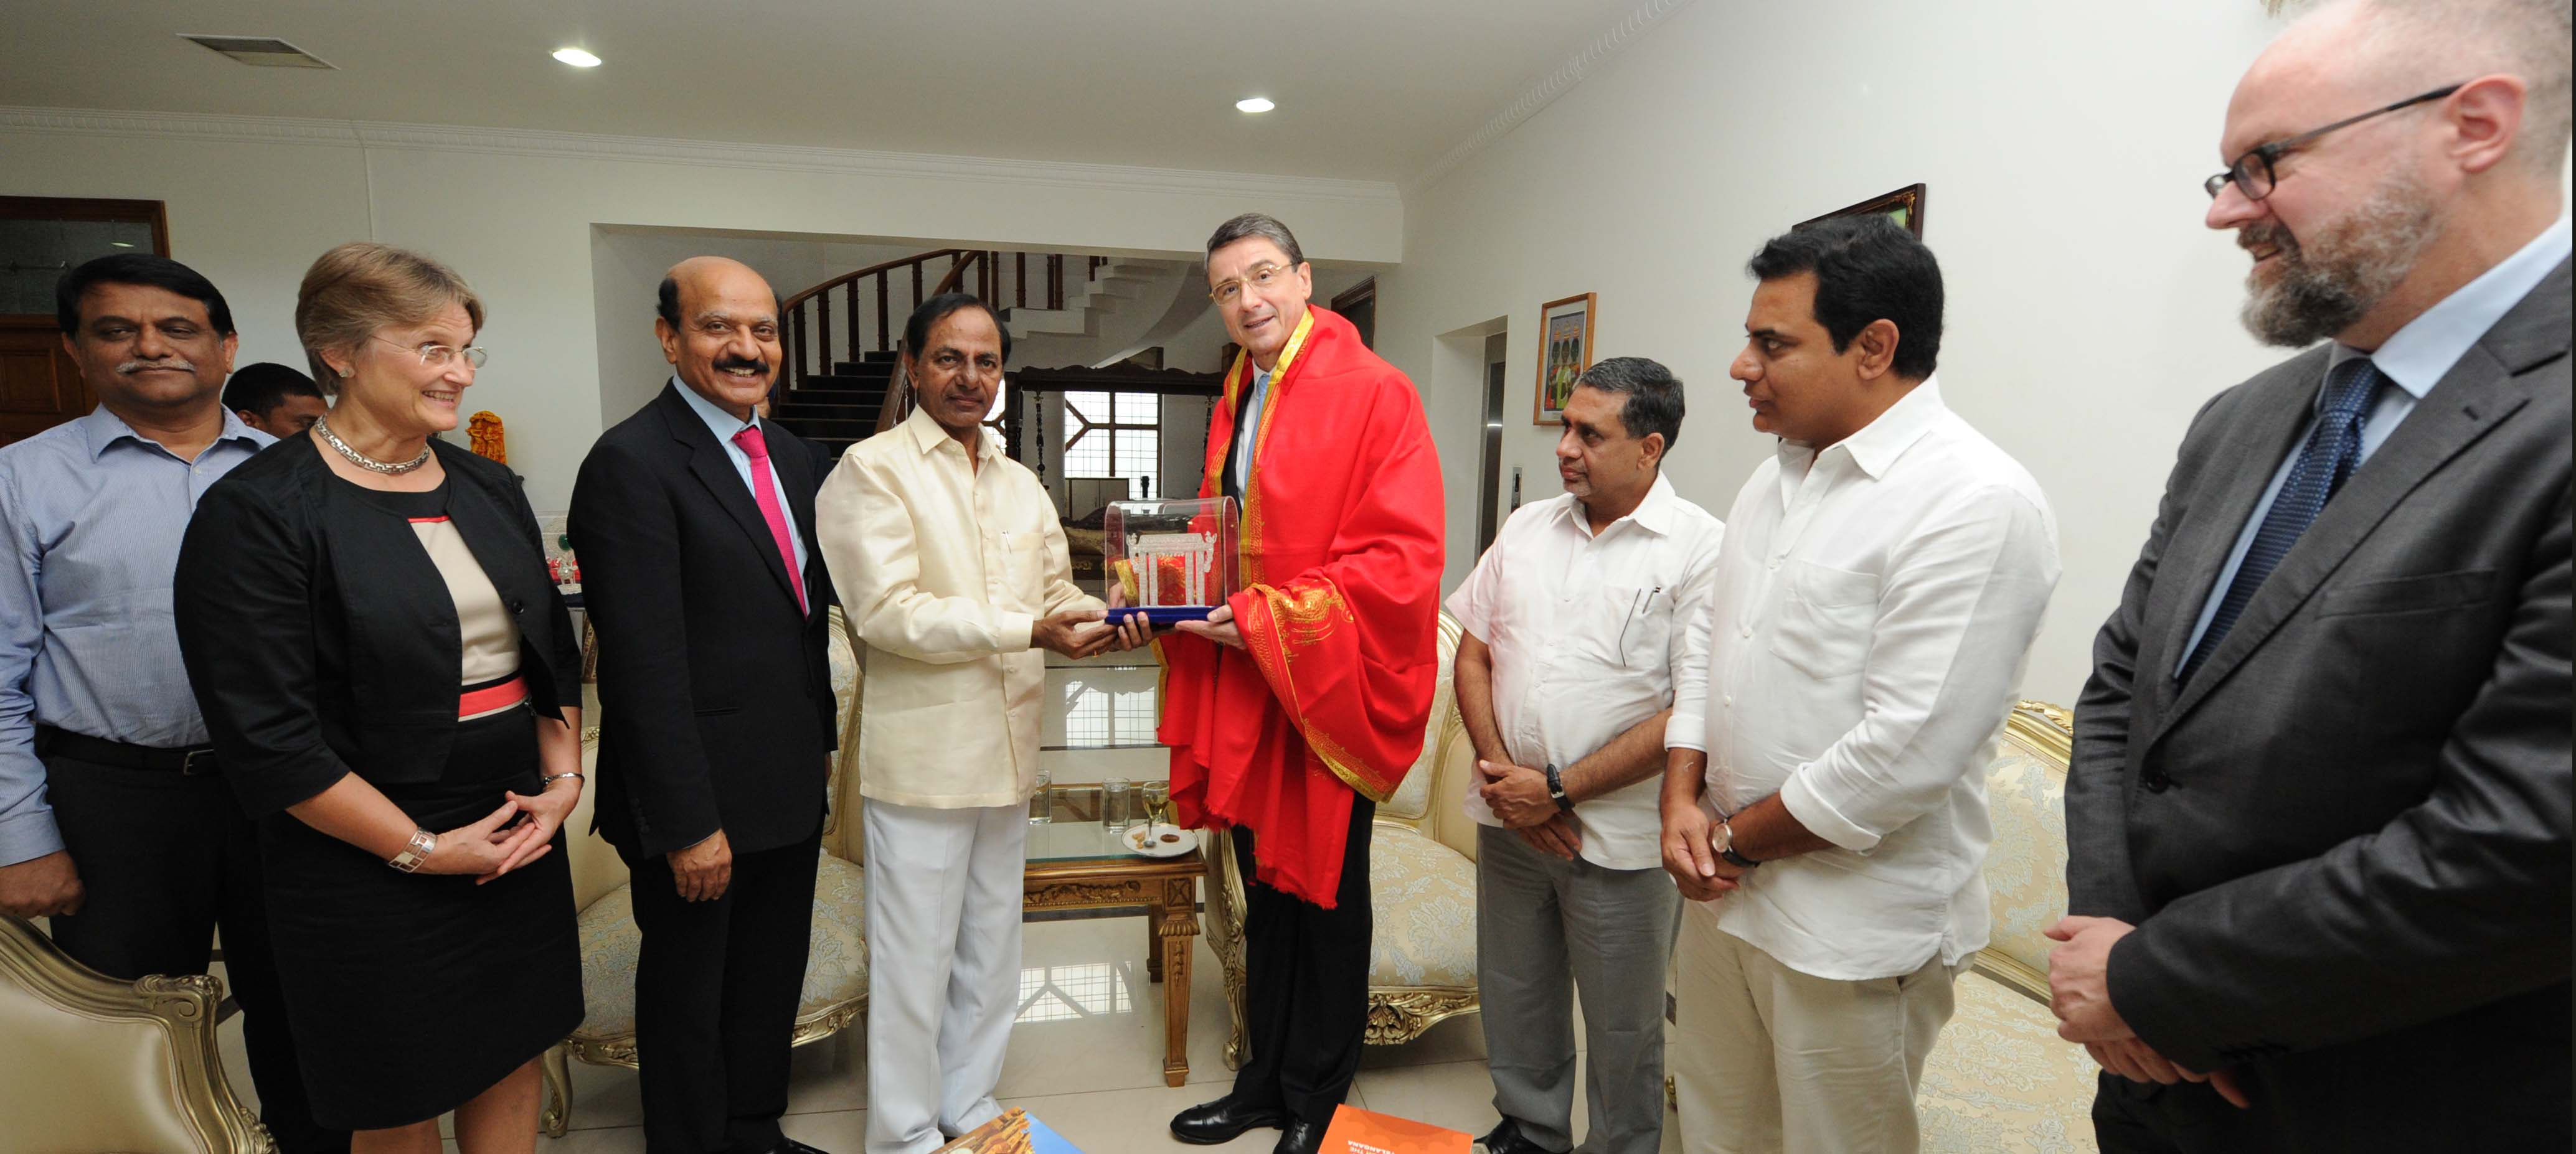 Dr Martin Ney German Ambassador accompanied by his wife Dr (Mrs) Gabriele Ney, Called on the E S L Narasimhan at Rajbhavan and CM K Chandrashekhar Rao at camp office. 04.10.2016.